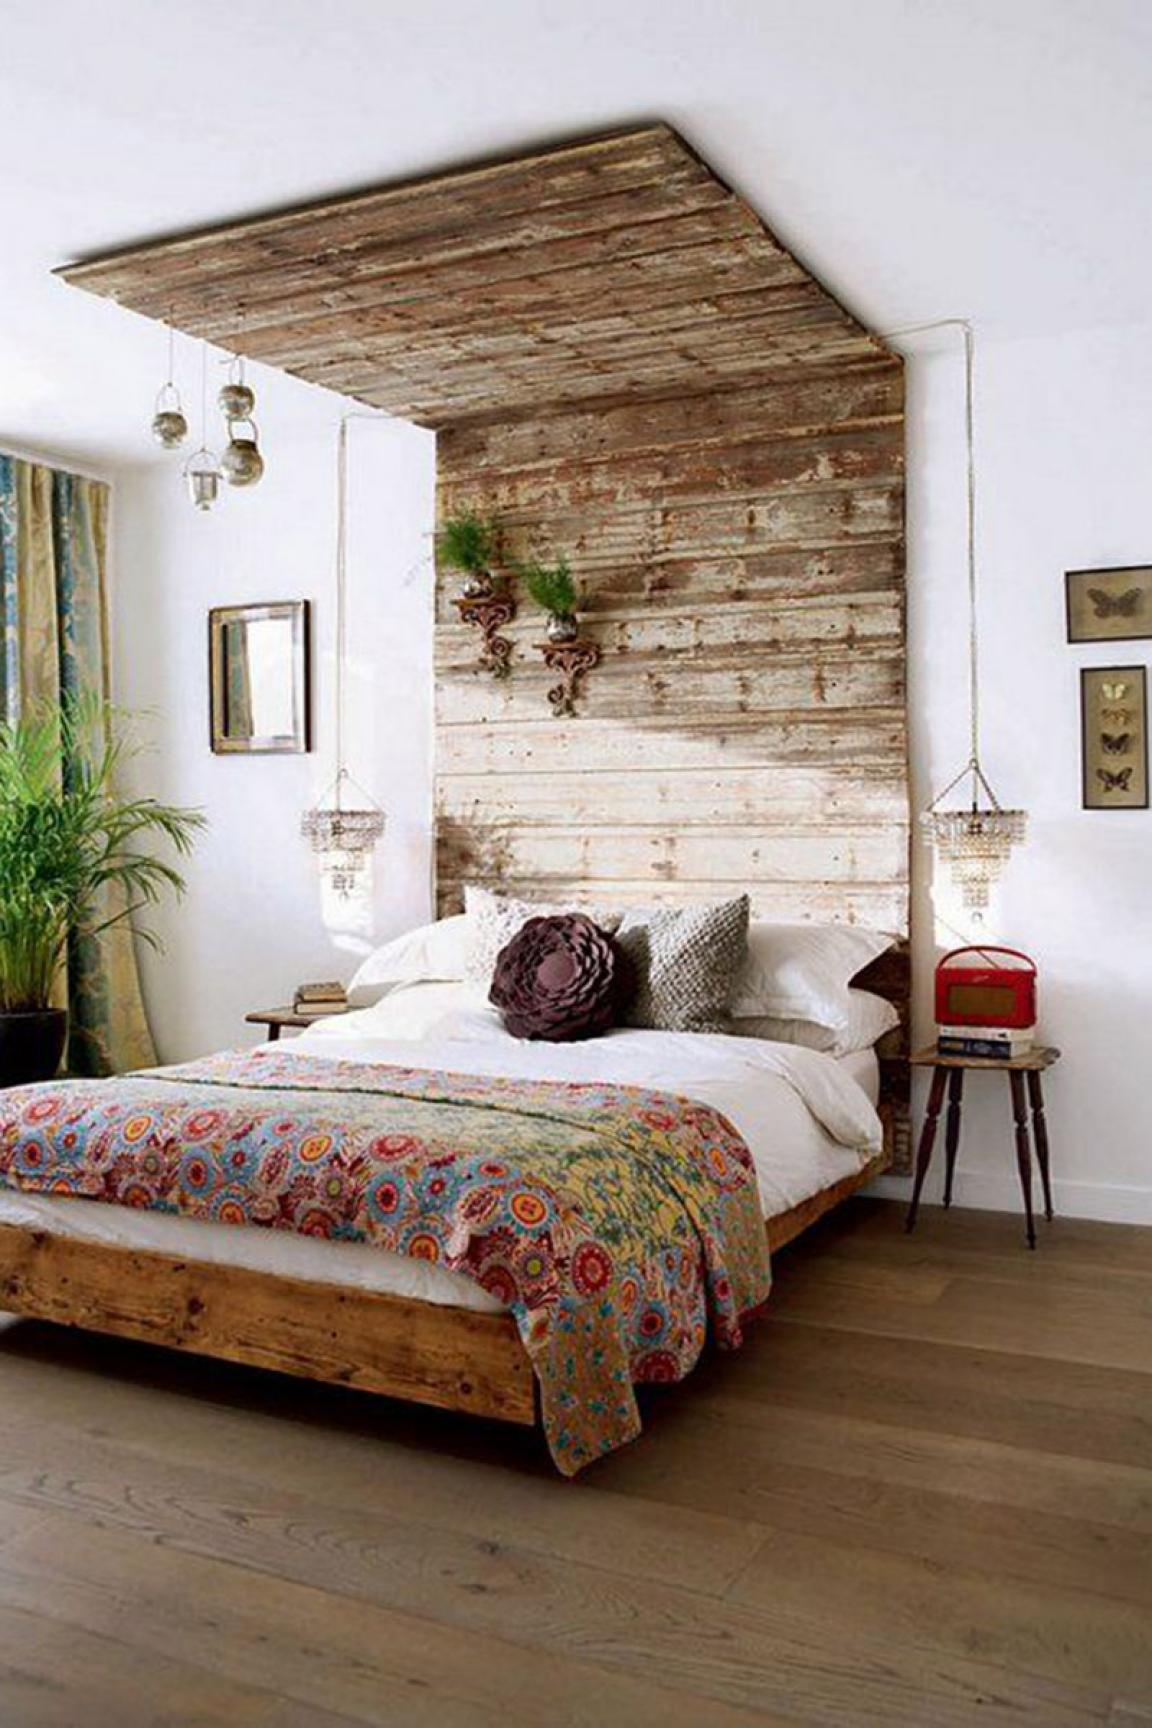 creative-floating-diy-rustic-bedroom-furniture